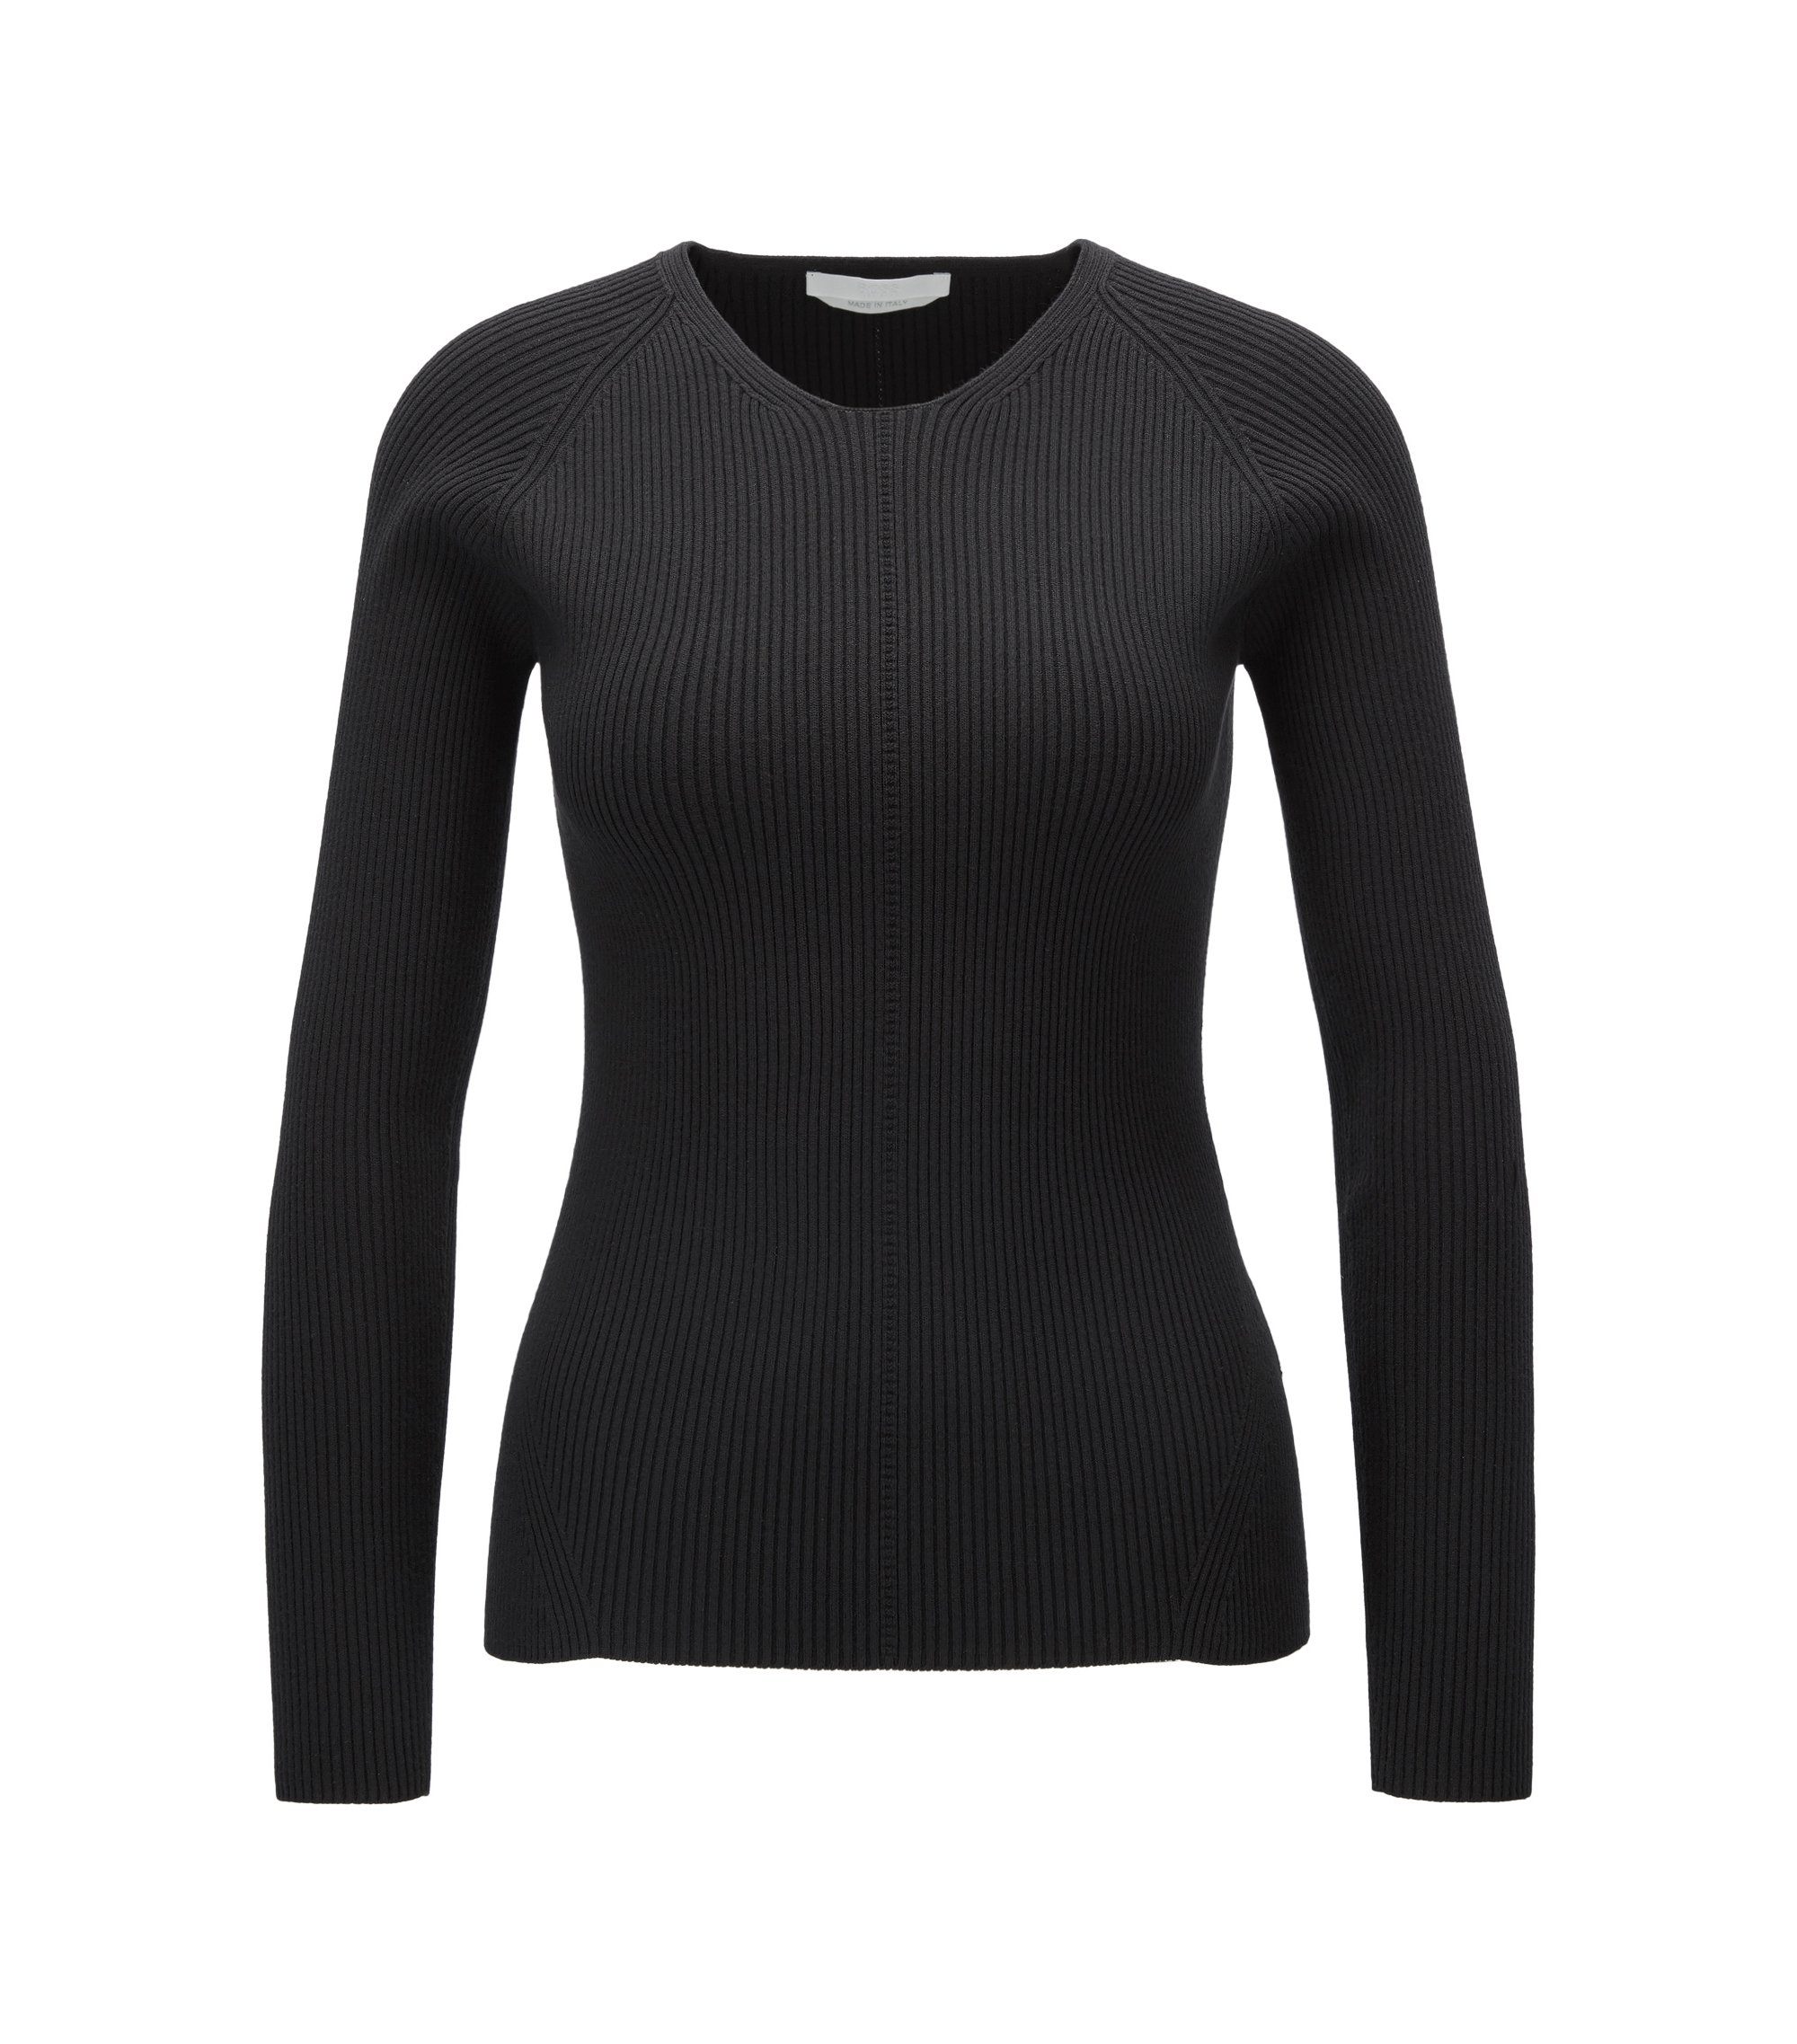 Crew-neck sweater in a textured rib knit, Black